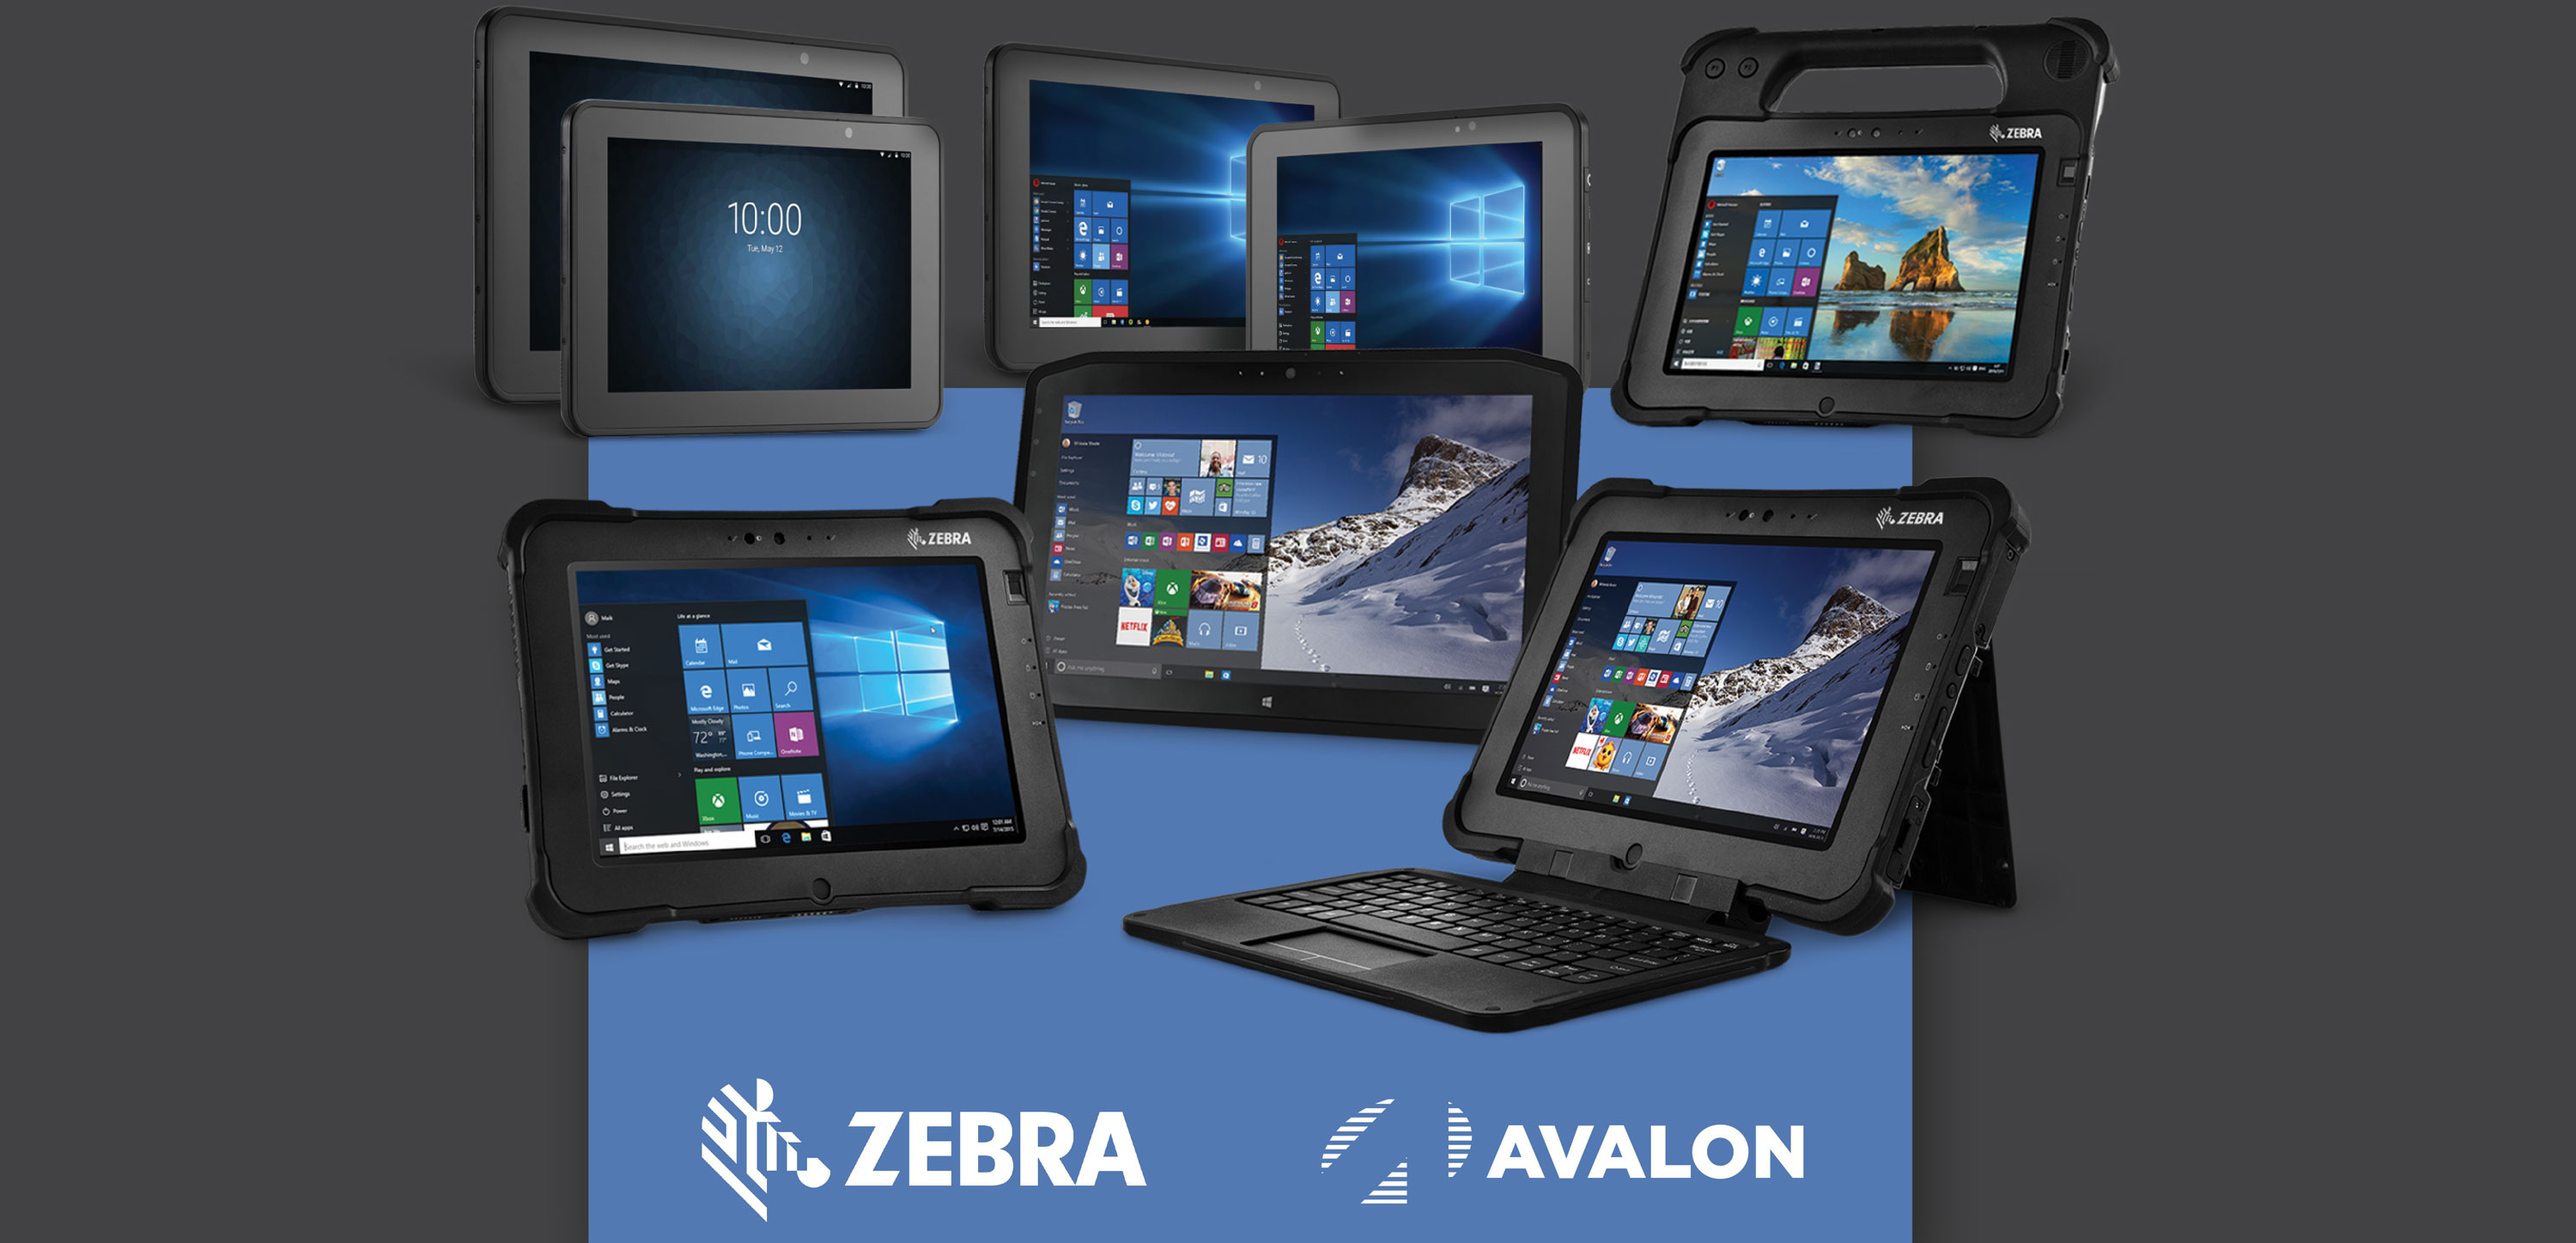 Zebra Rugged Tablets with Avalon Integration